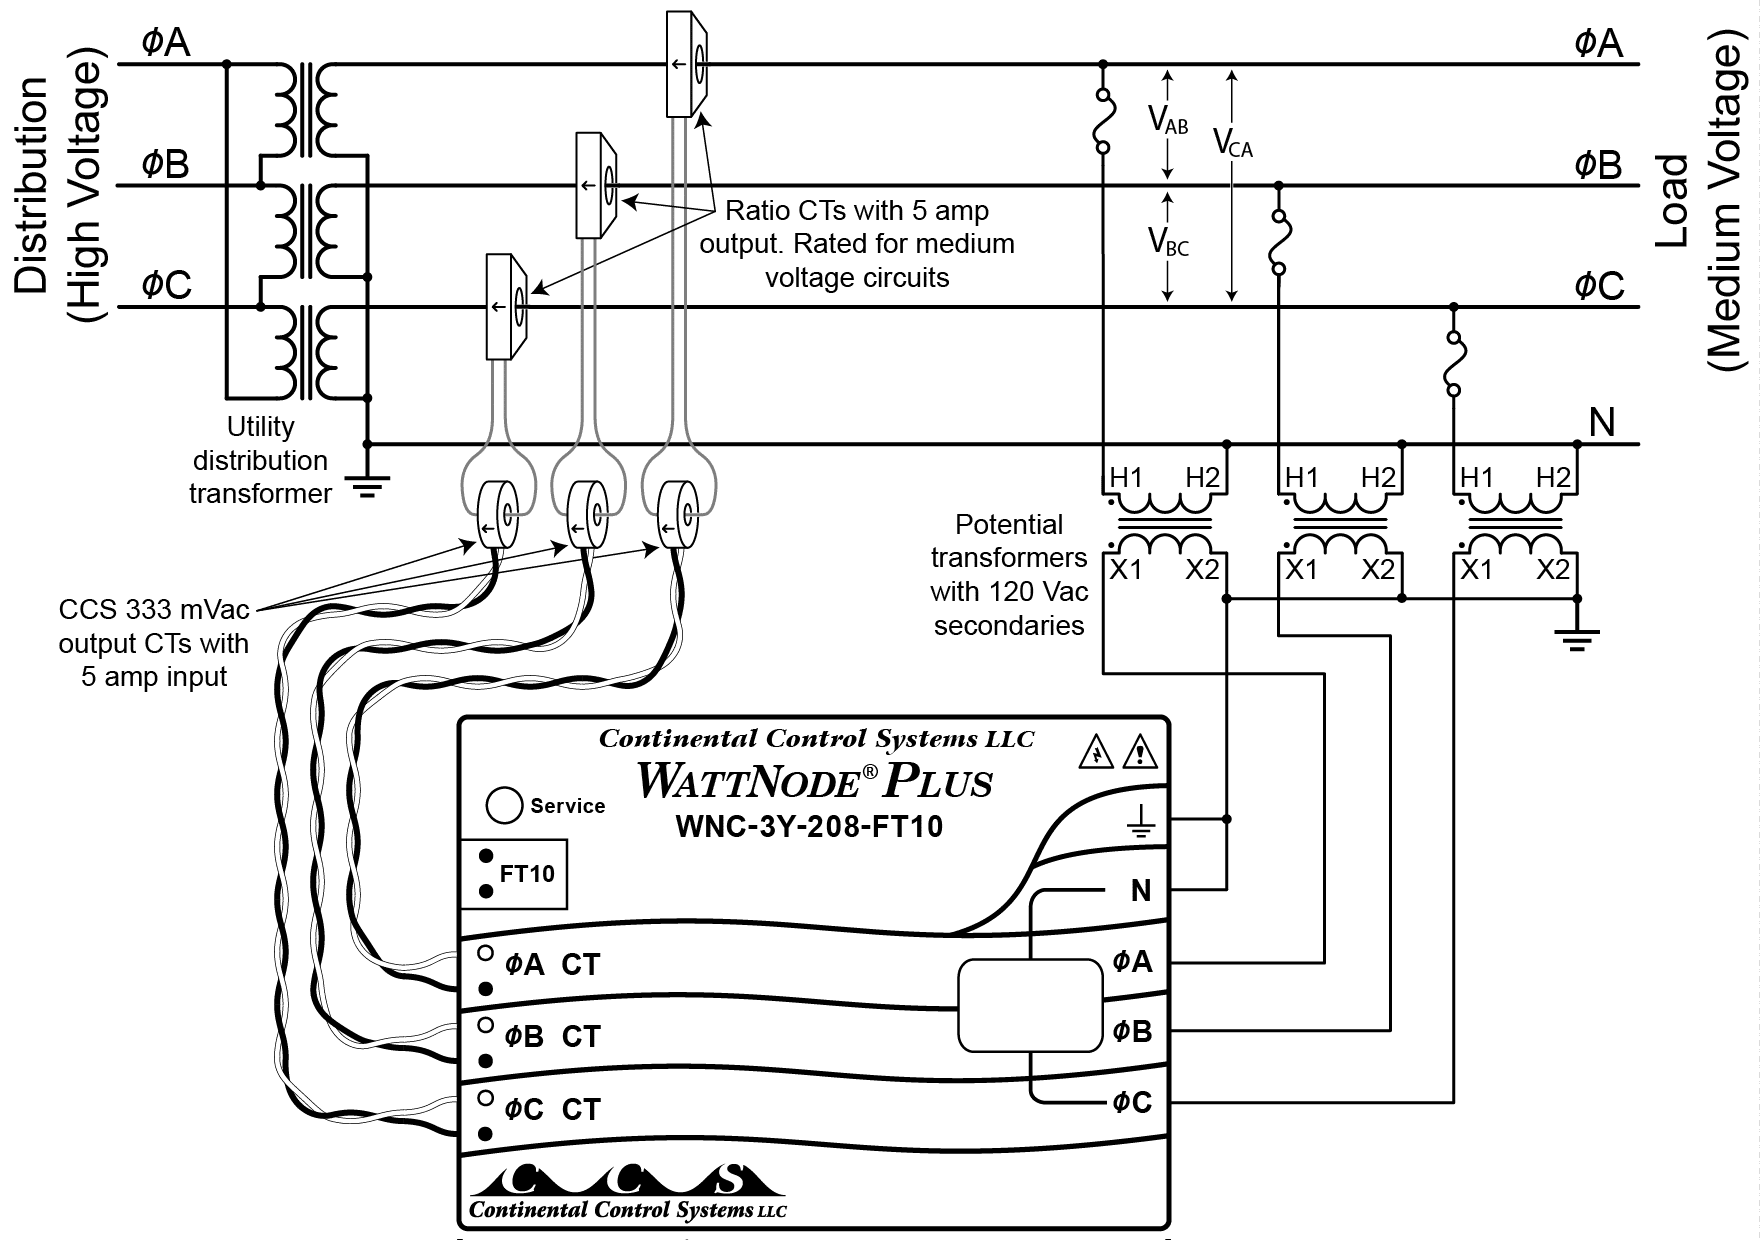 ct wiring diagram wiring diagram ct meter wiring diagram ct wiring diagram  just another wiring data